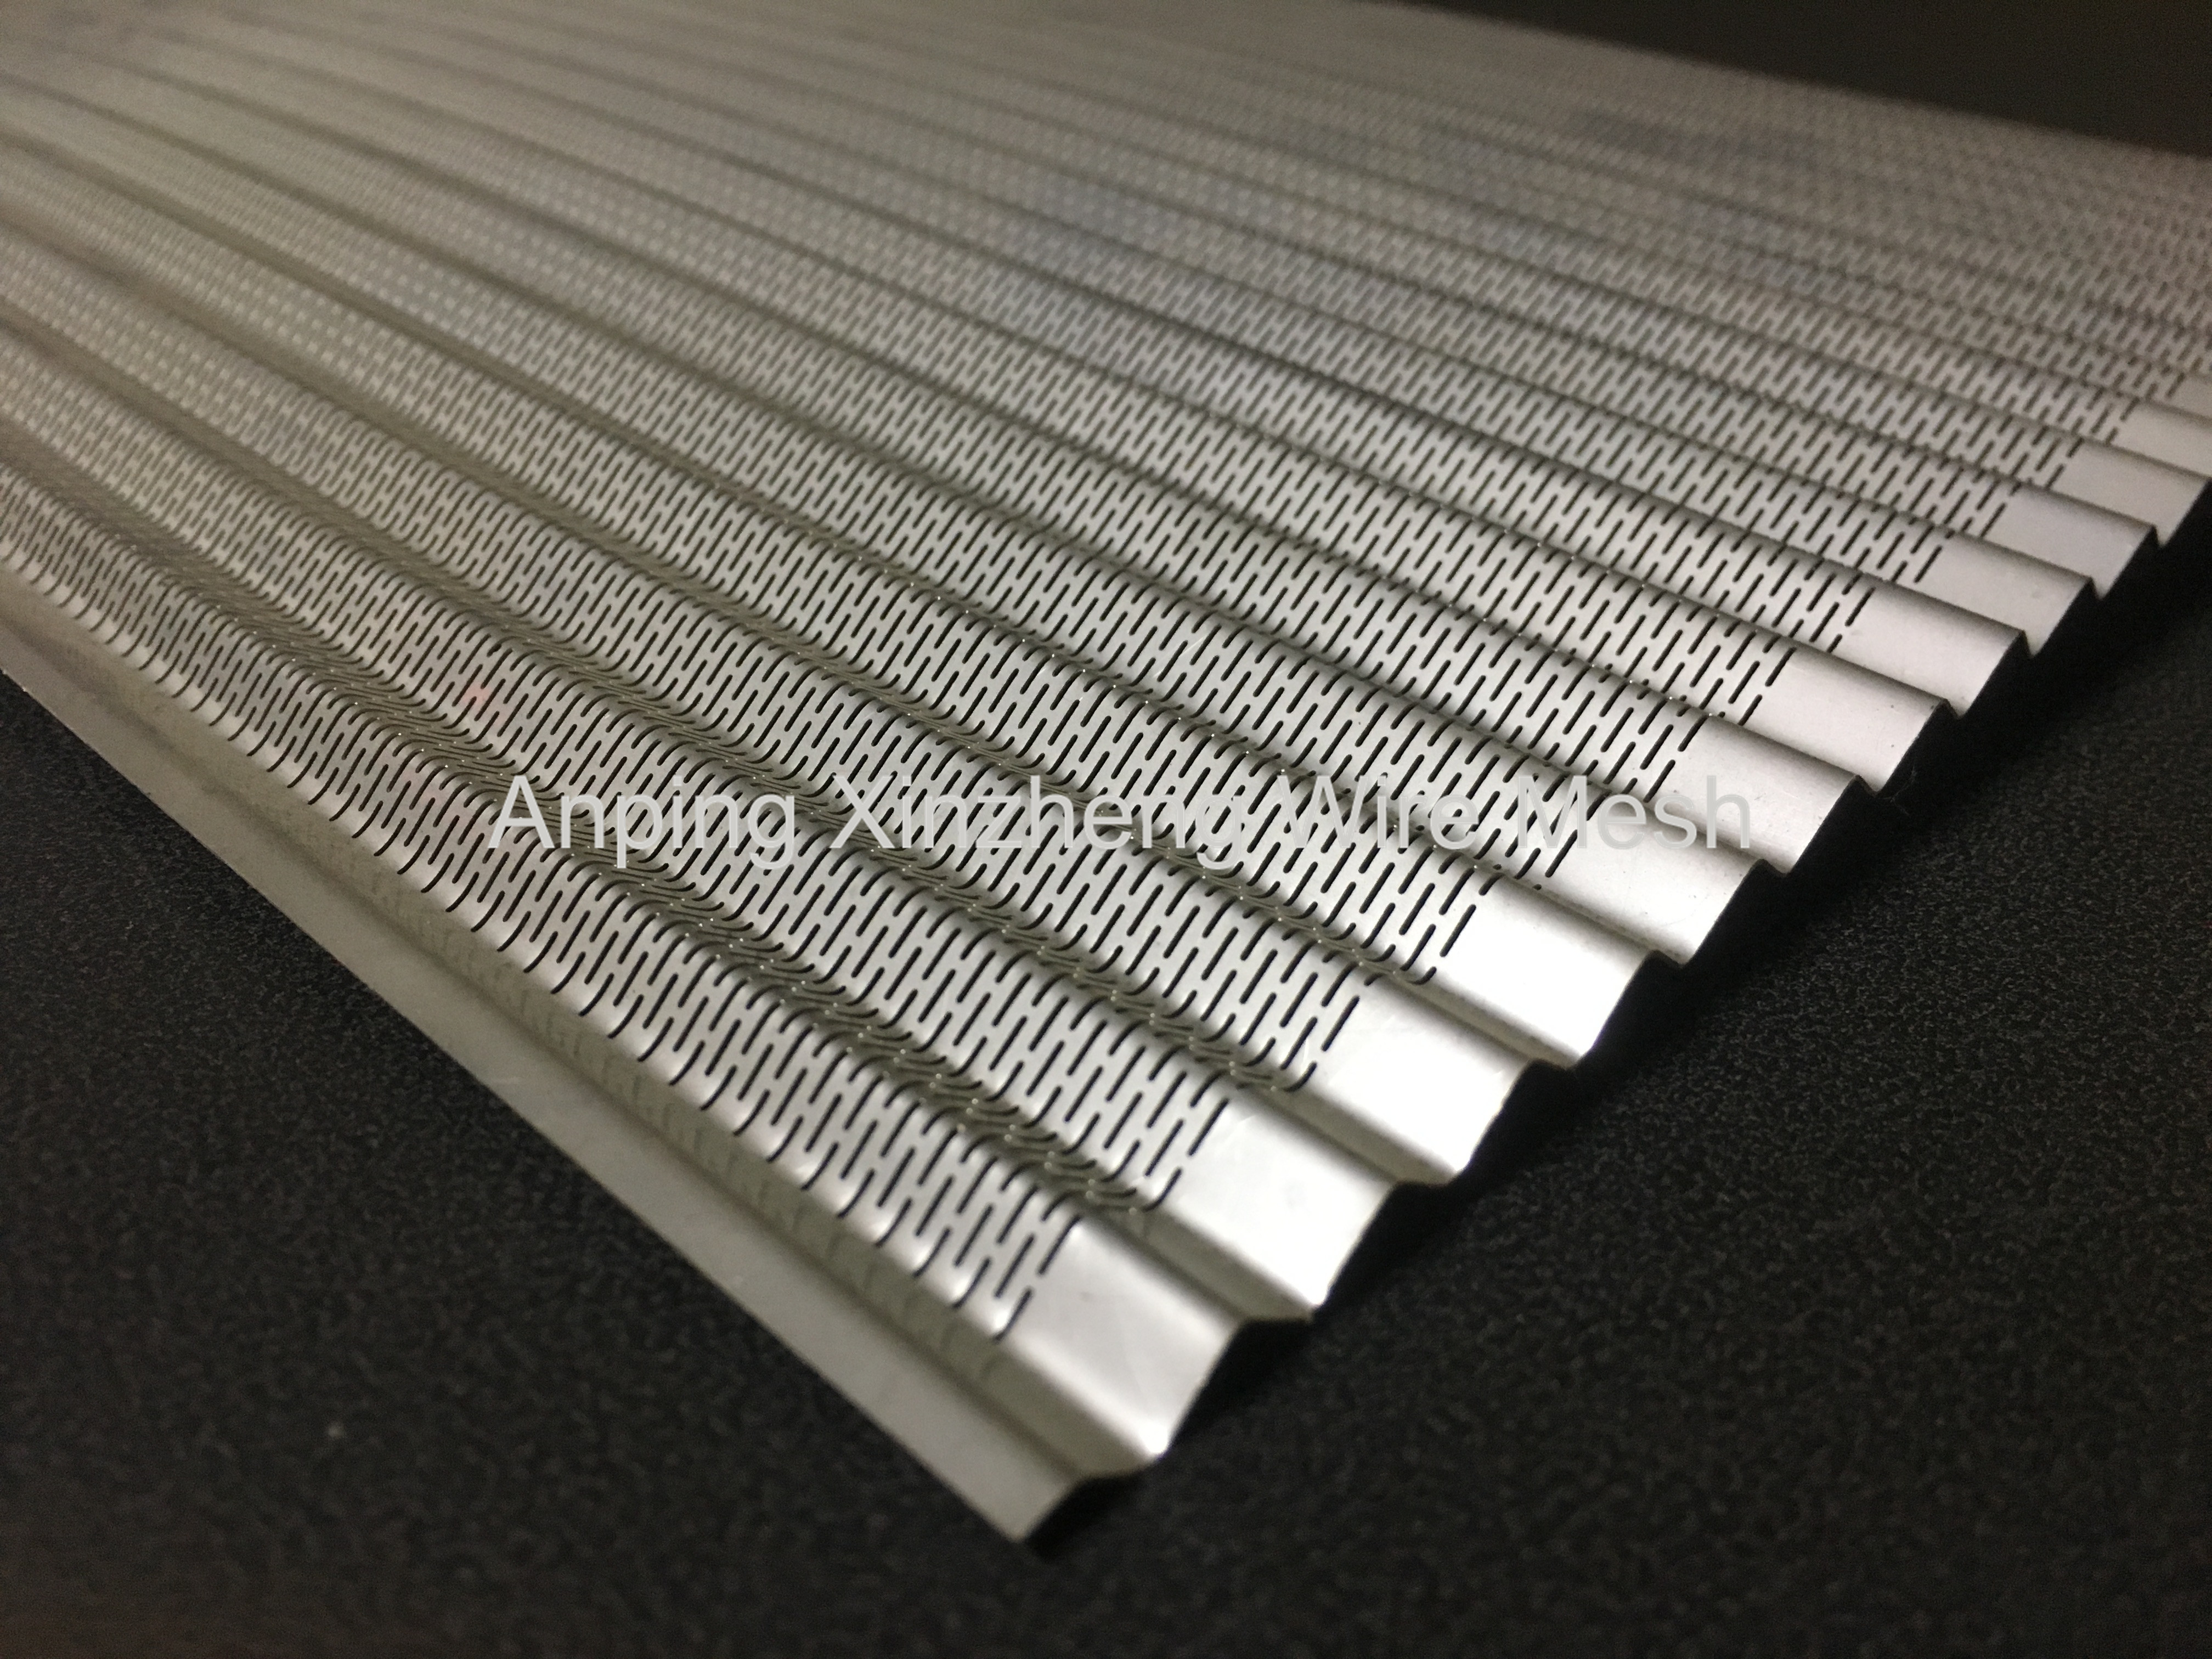 Slotted Holes Perforated Metal